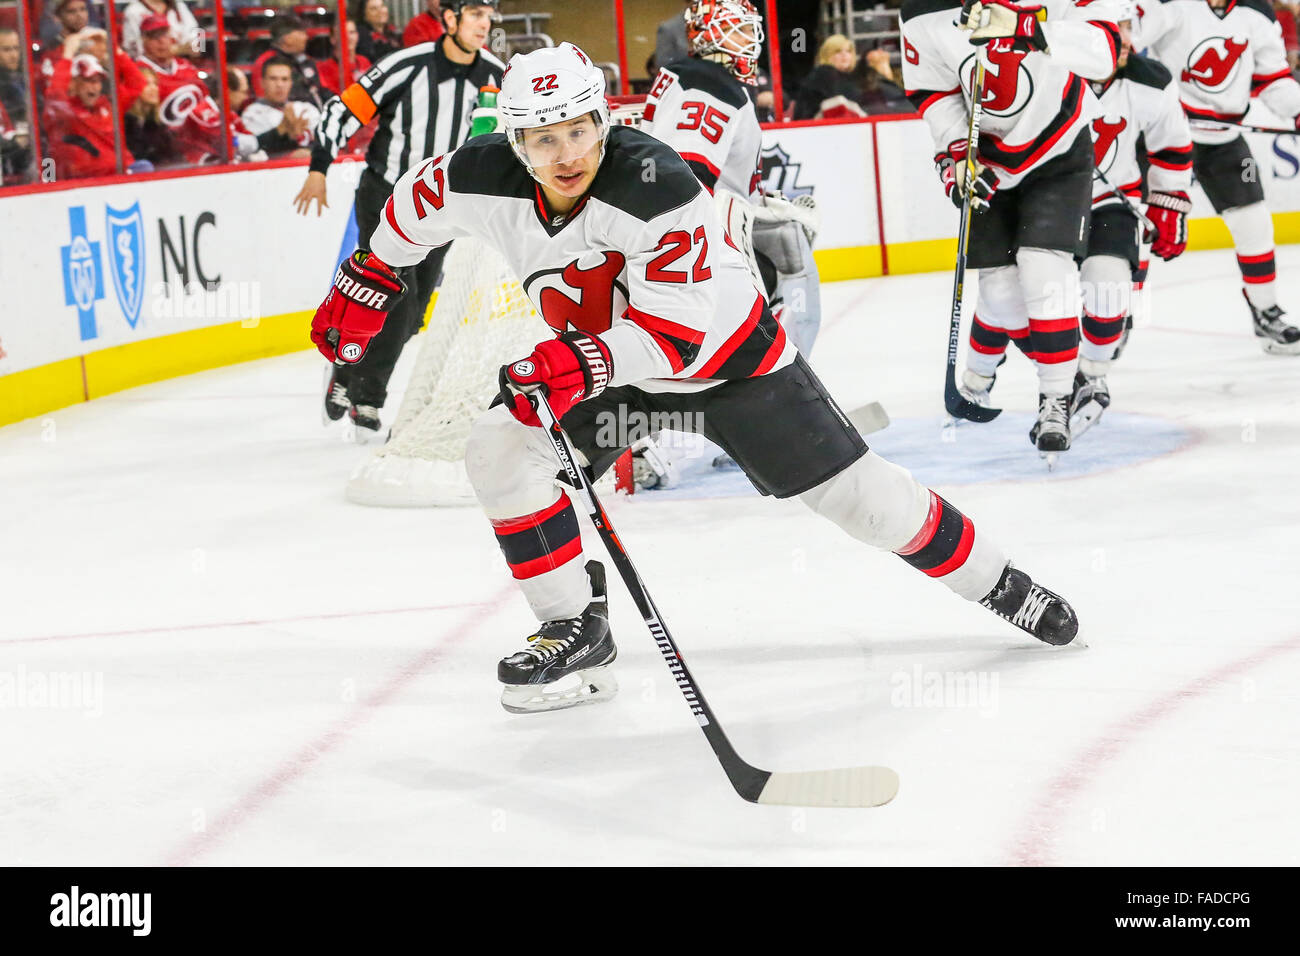 low priced 47d56 6cea3 New Jersey Devils right wing Jordin Tootoo (22) during the ...